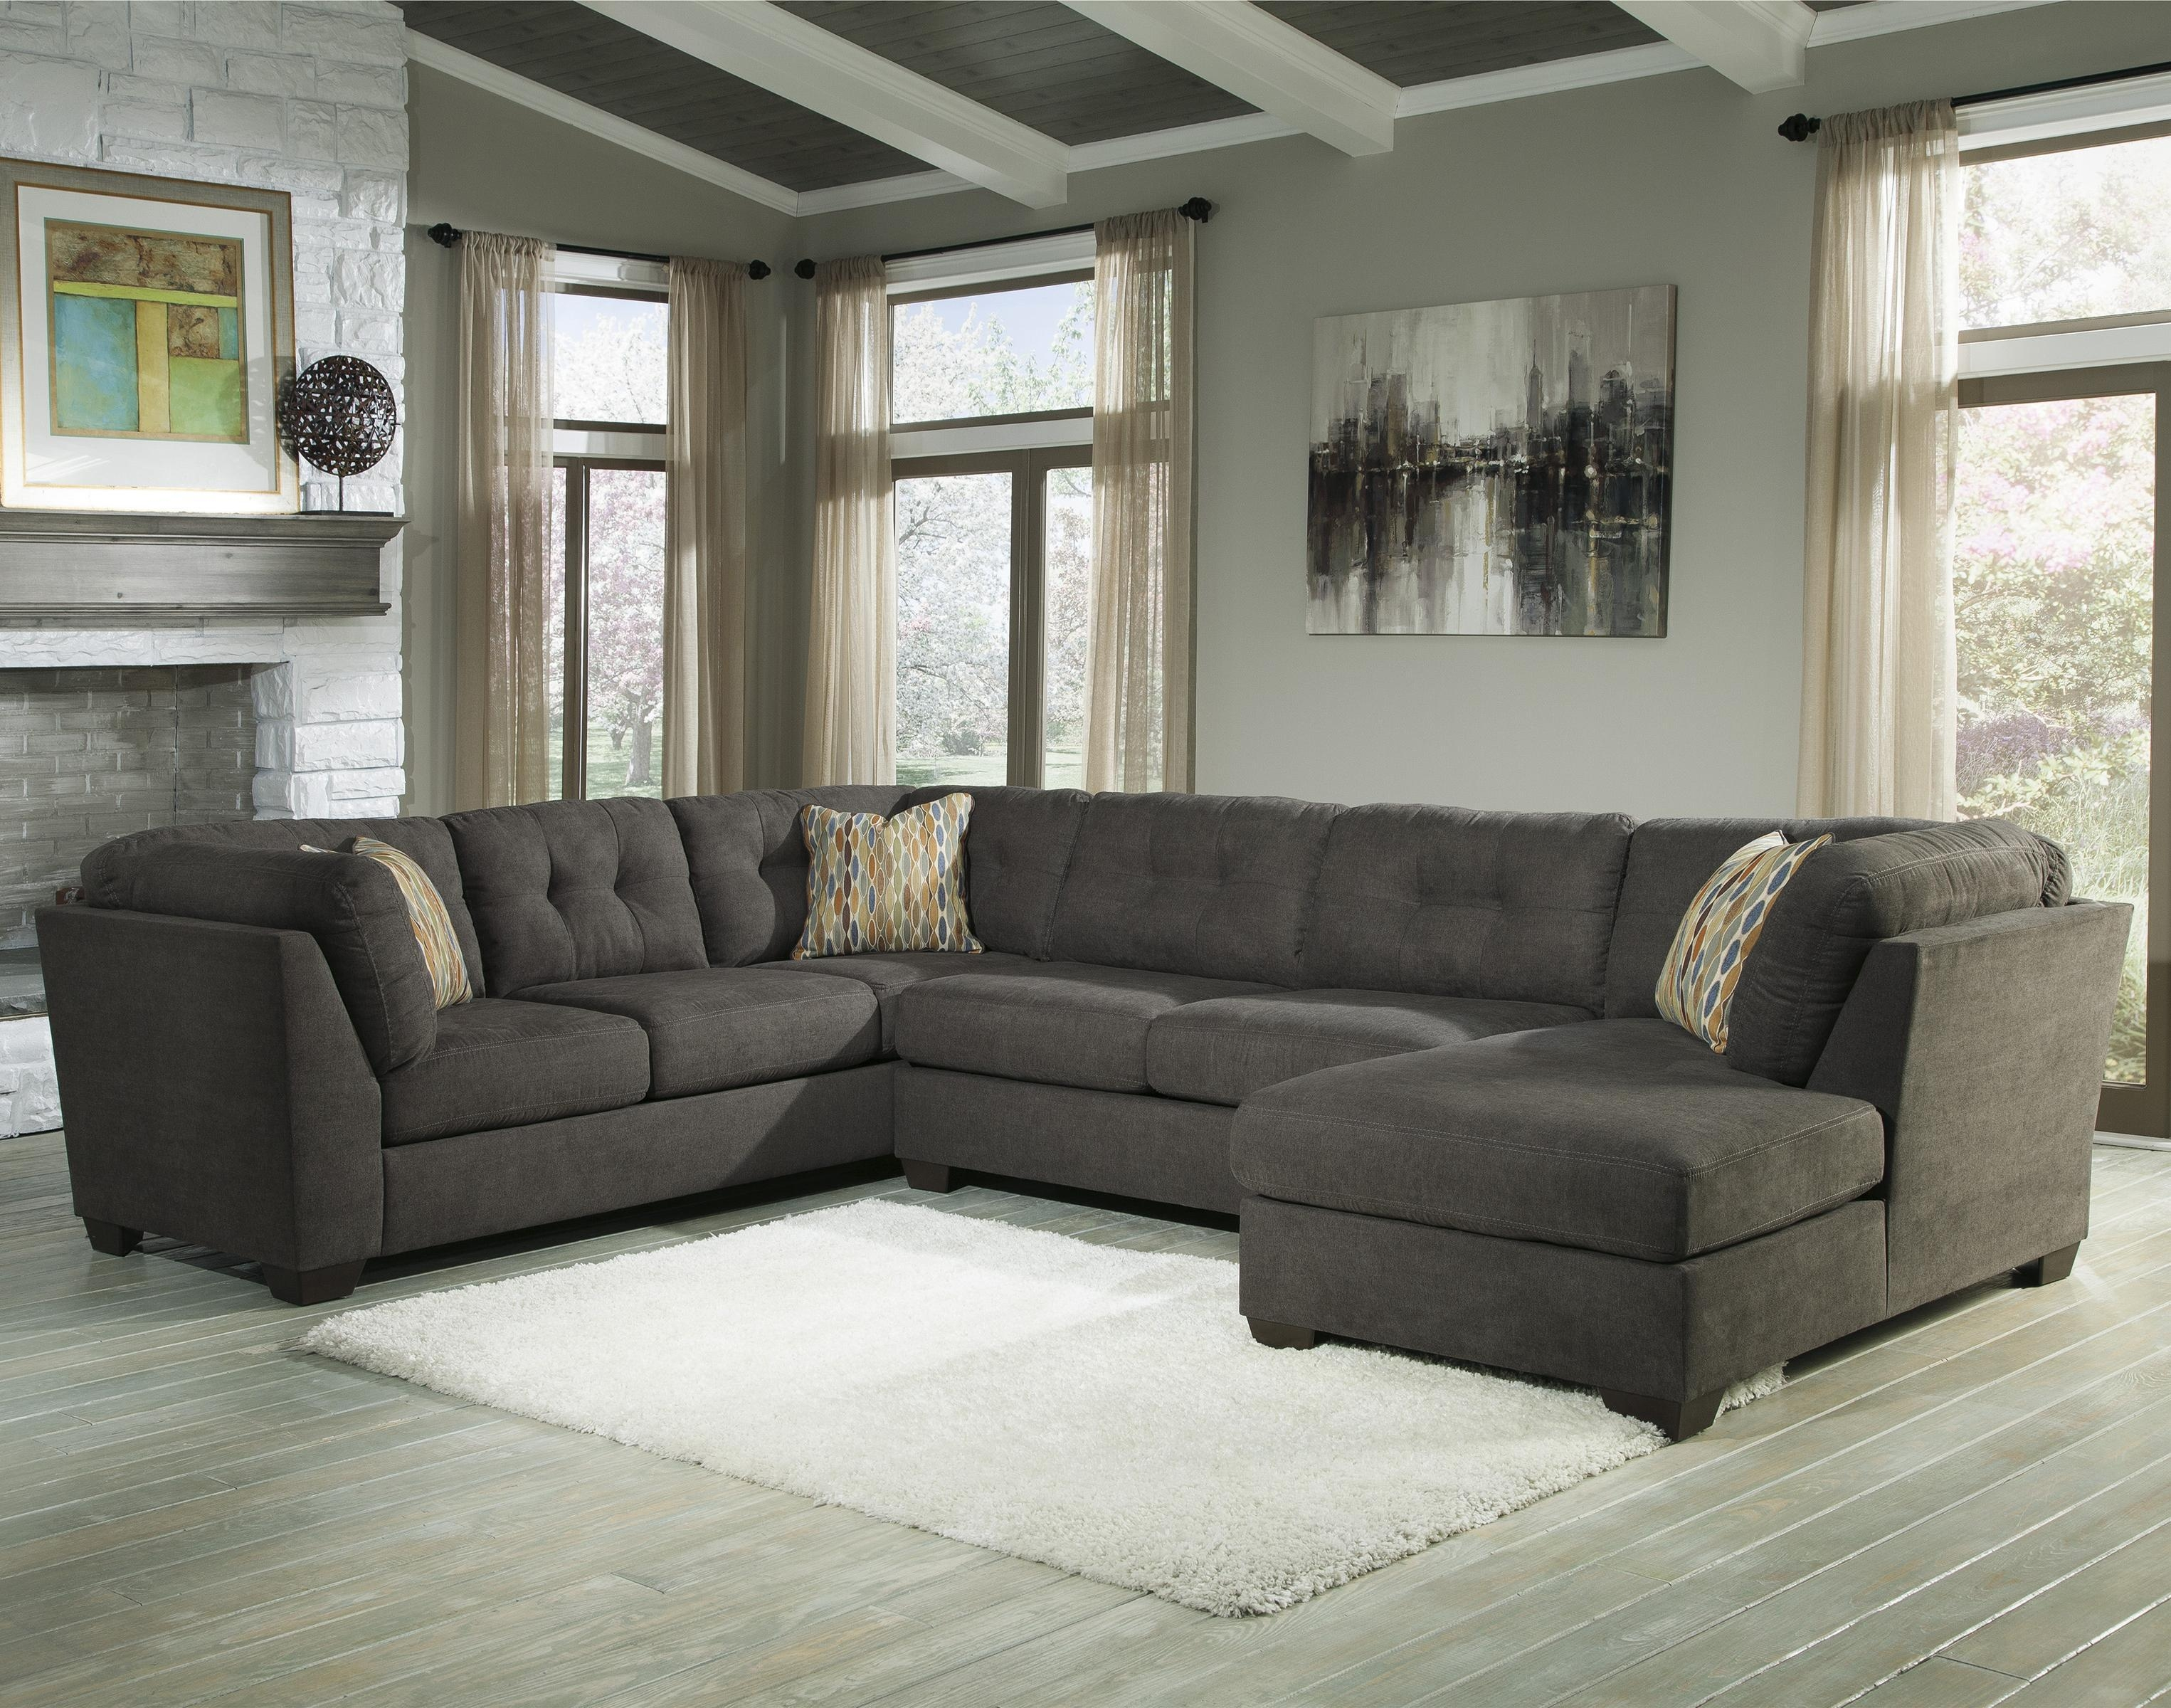 Benchcraft Delta City – Steel 3 Piece Modular Sectional With Right Pertaining To Individual Piece Sectional Sofas (Image 4 of 20)